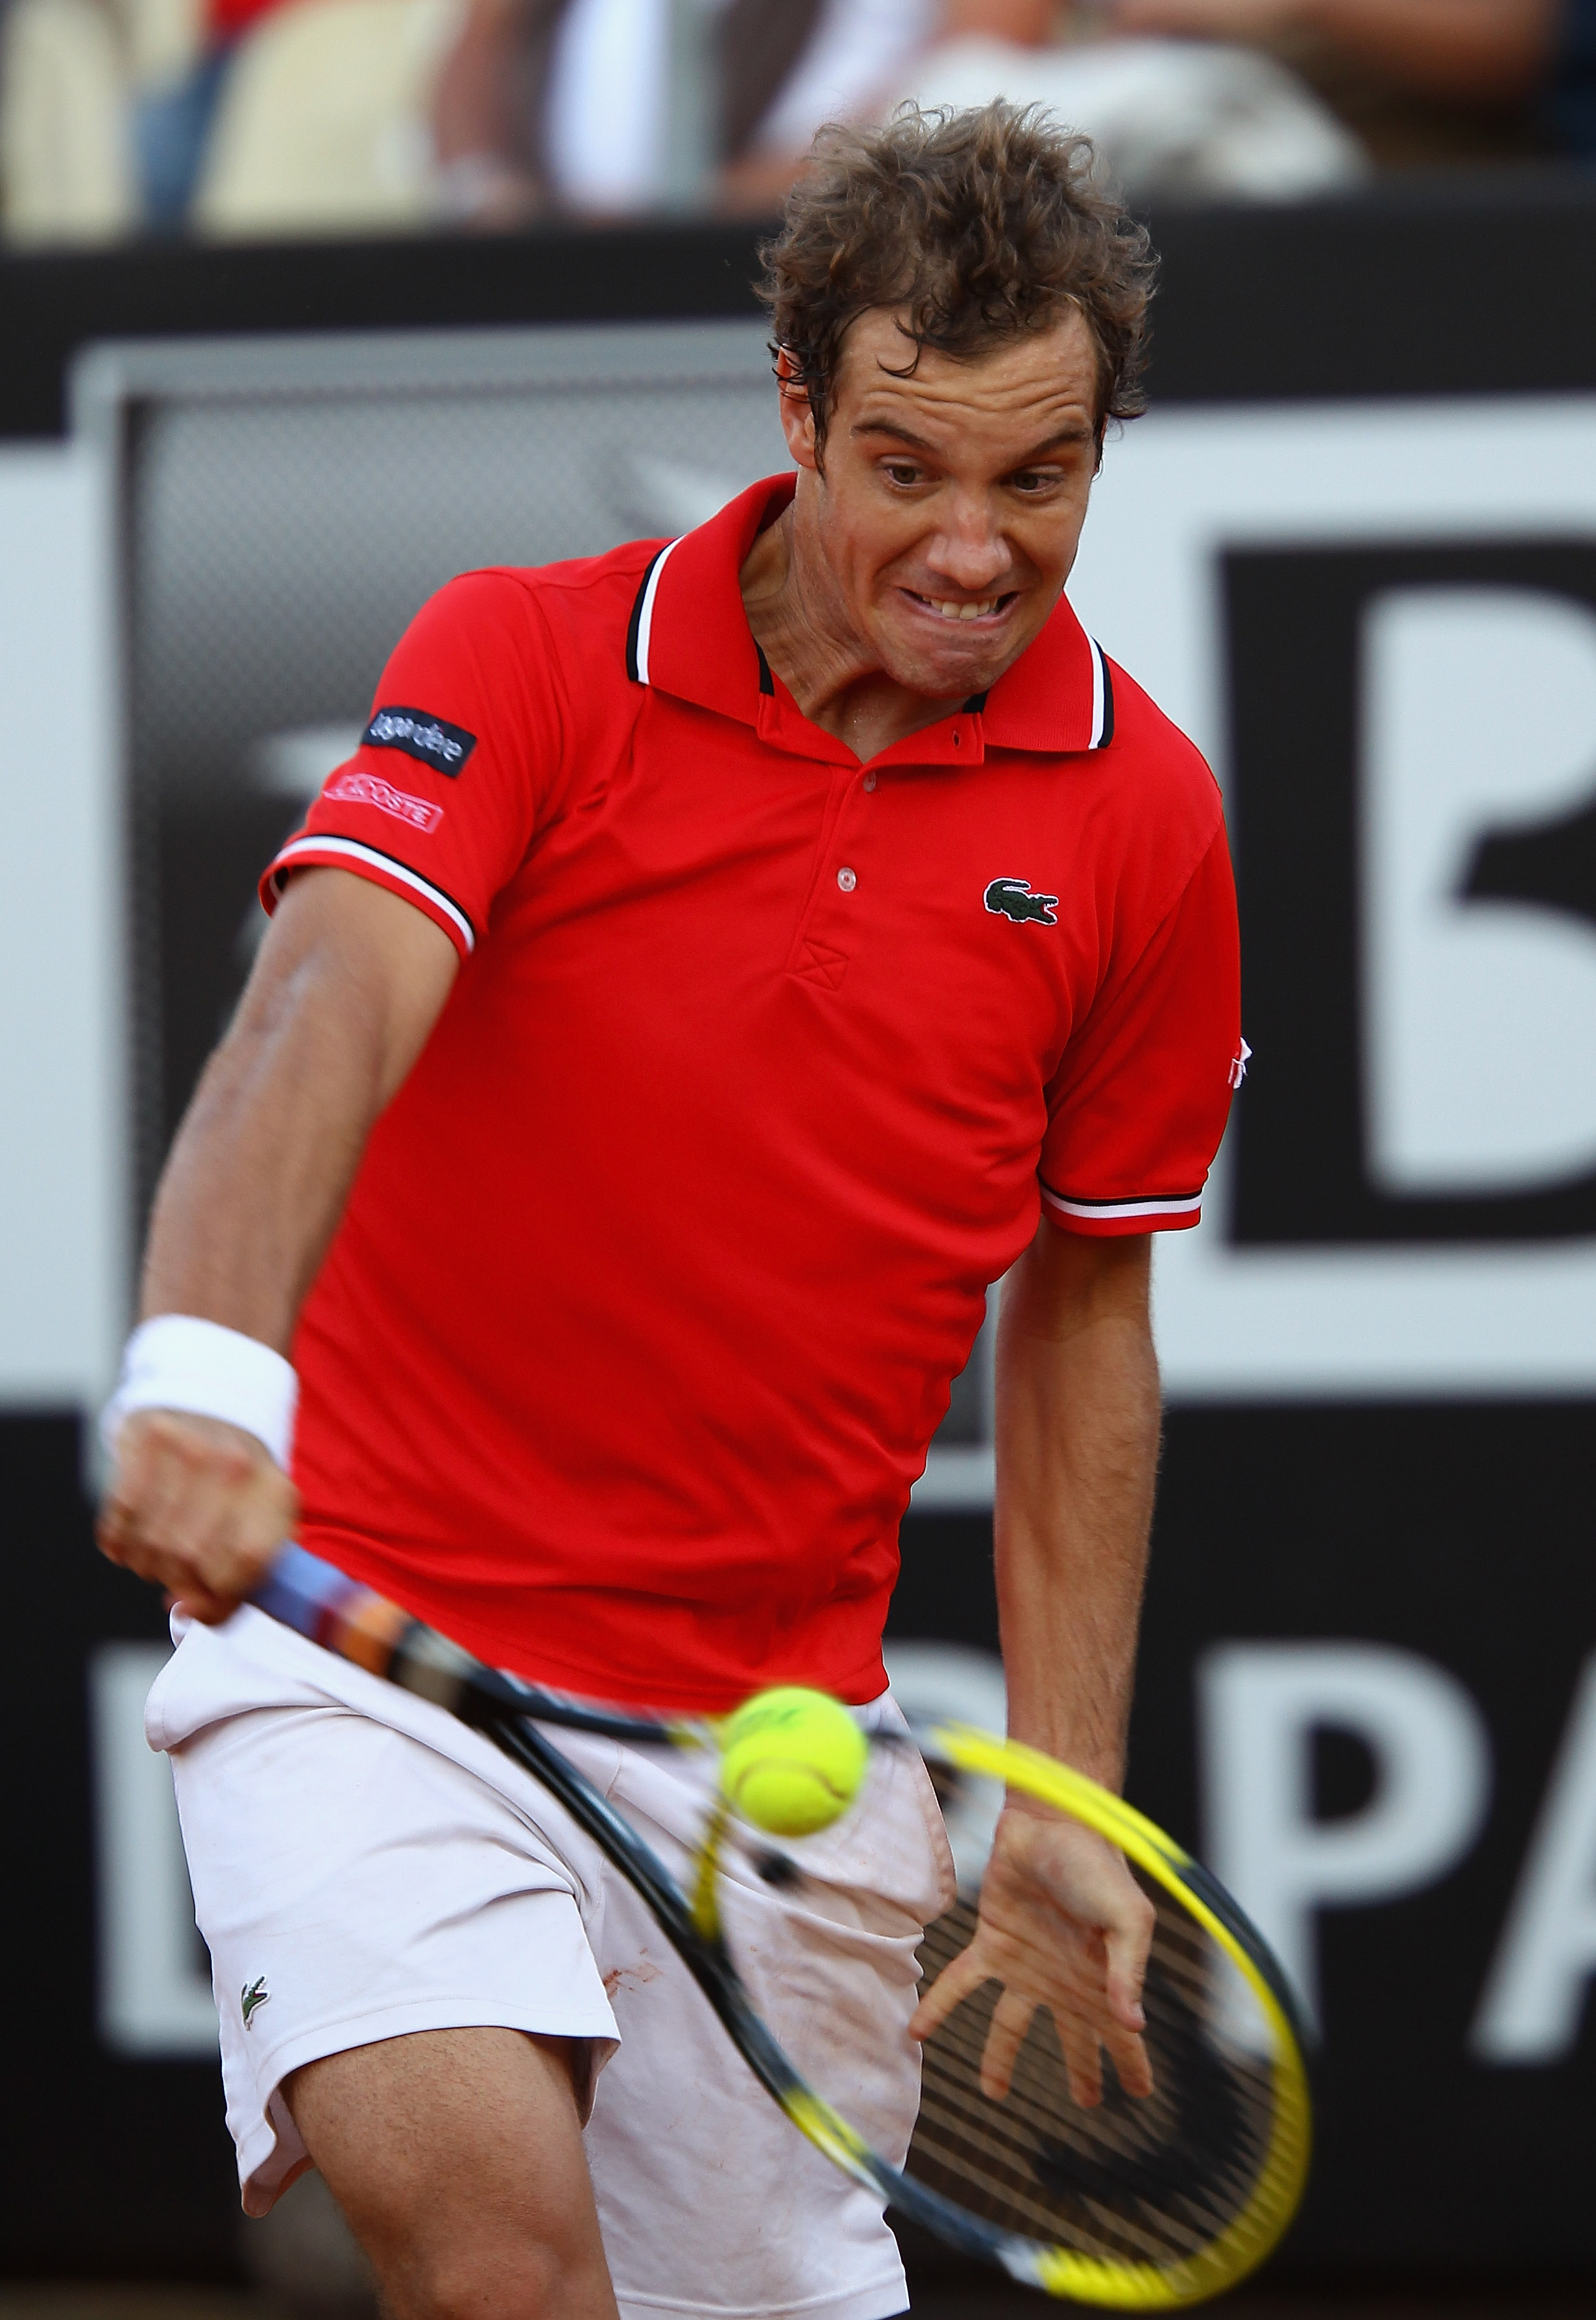 ROME, ITALY - MAY 13:  Richard Gasquet of France plays a backhand during his quarter final match against Tomas Berdych of Czech Republic during day six of the Internazoinali BNL D'Italia at the Foro Italico Tennis Centre  on May 13, 2011 in Rome, Italy.